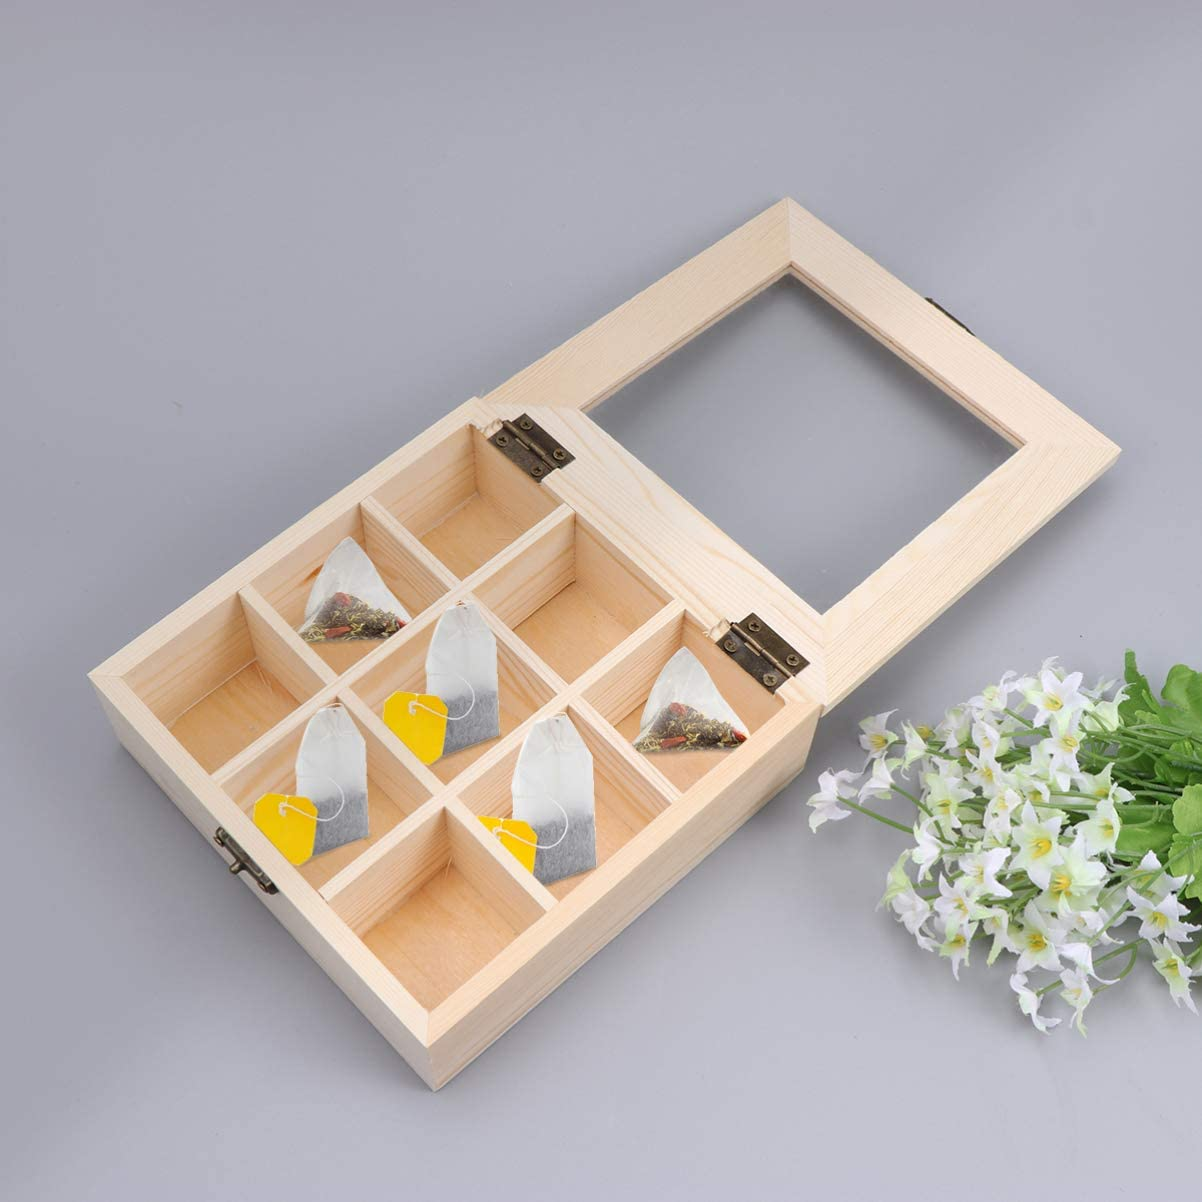 LIOOBO Wooden Tea Coffee Display Case Wooden Tea Box with 9-Compartment and Glass Window for Home Restaurant Shop